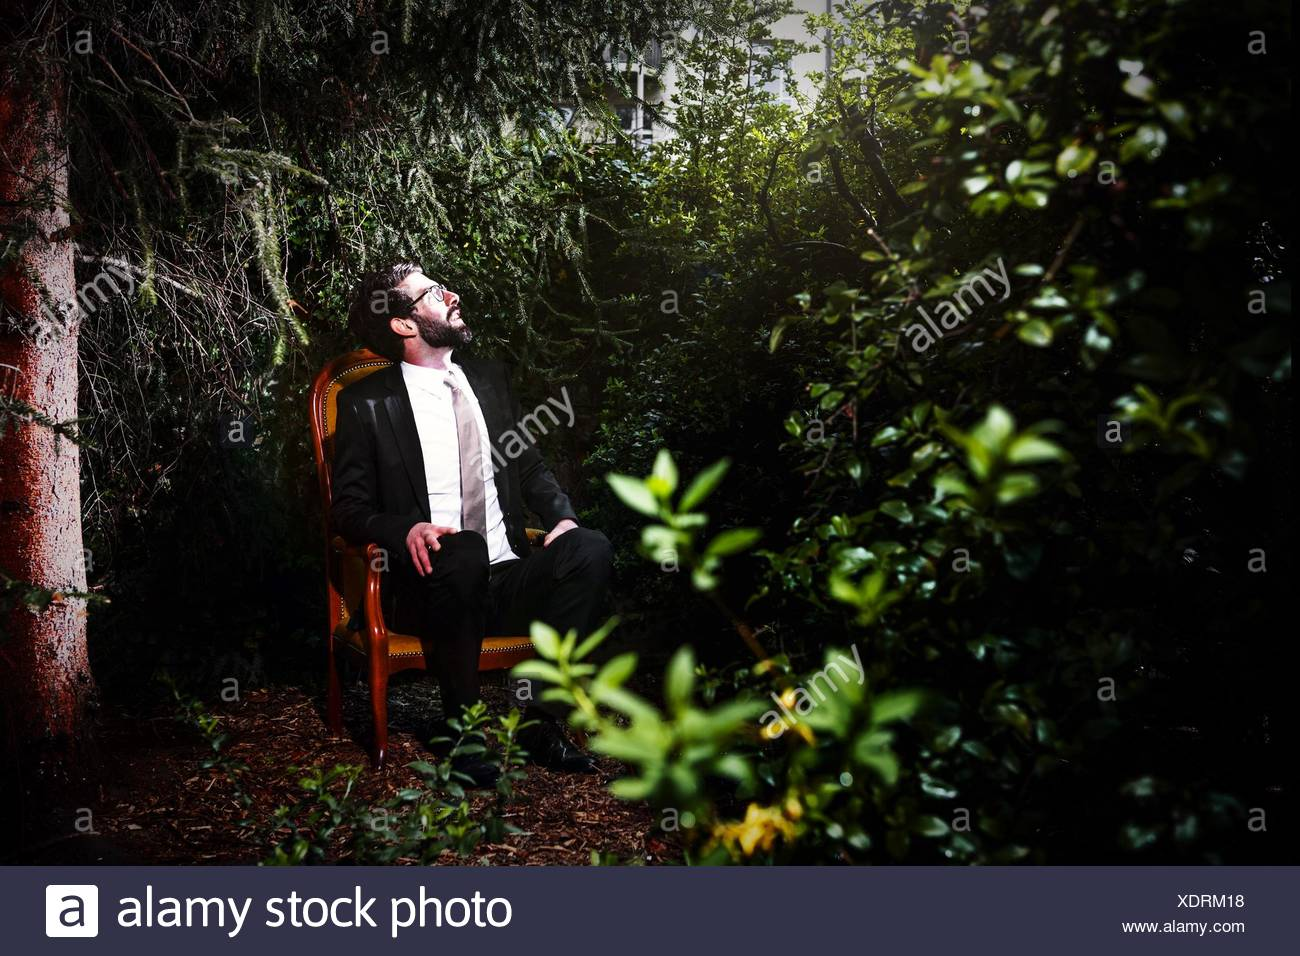 Man Wearing Suit Sitting On Chair In Yard While Looking Up - Stock Image